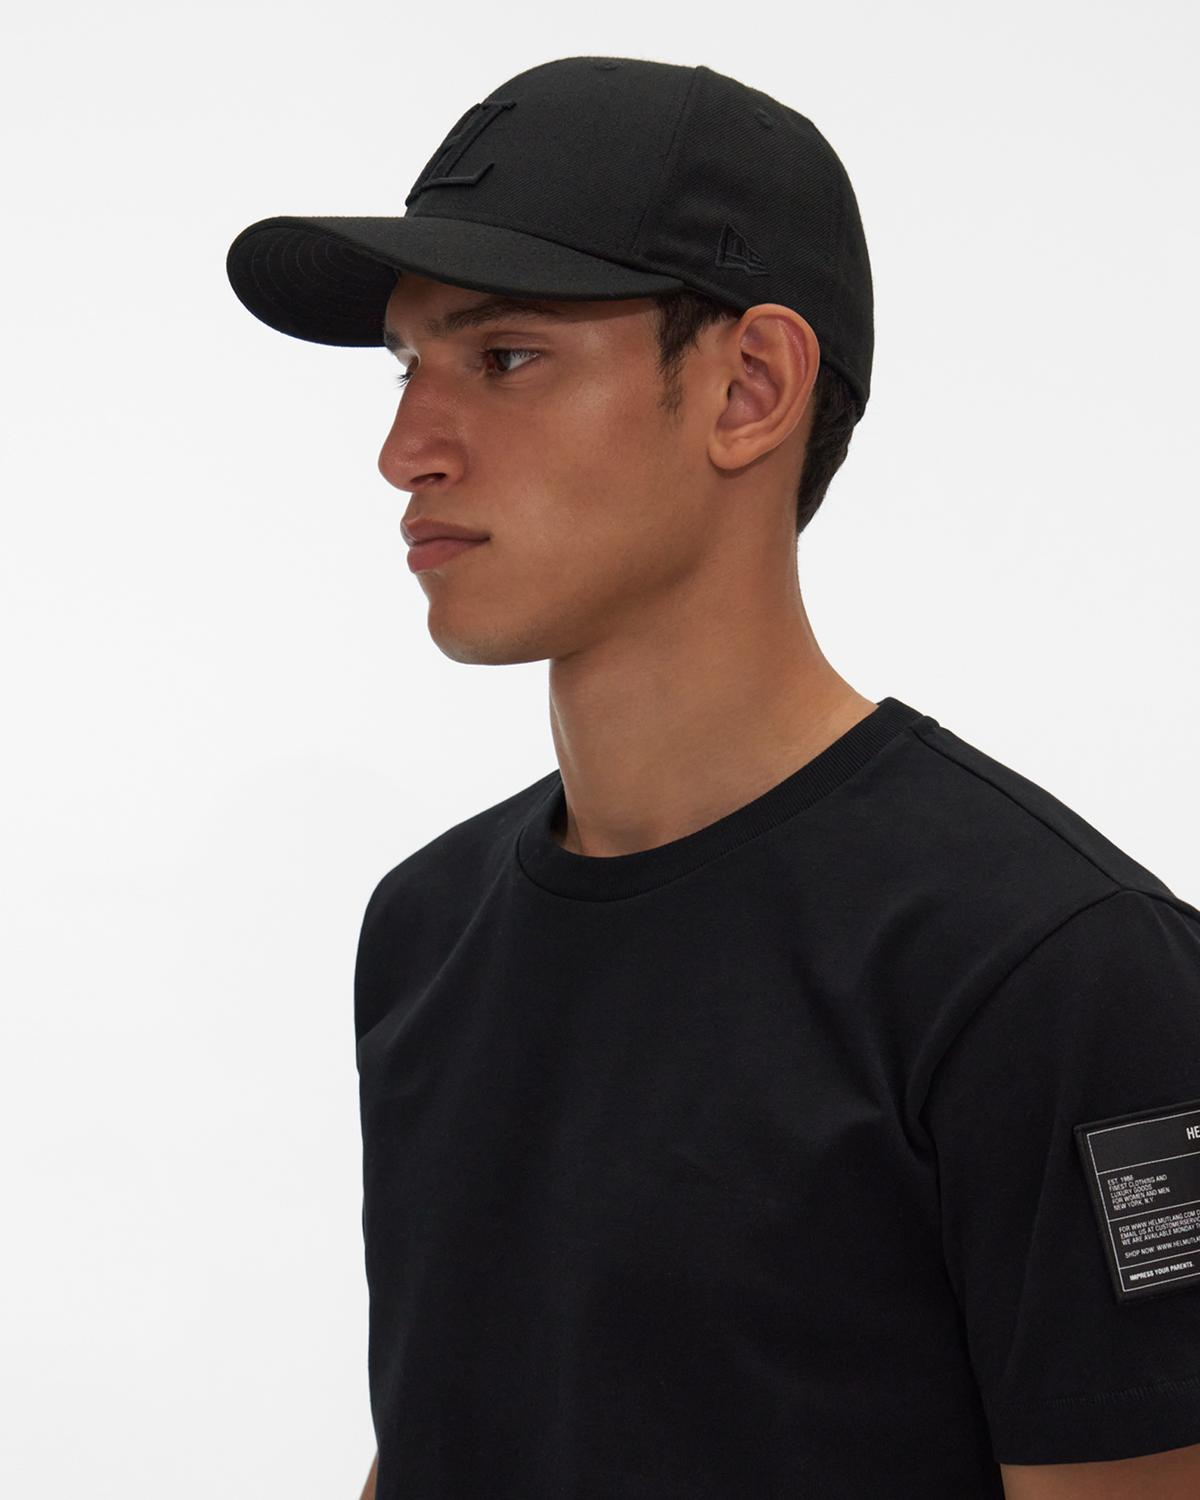 New Era x Helmut Lang Low Pro 59Fifty Hat